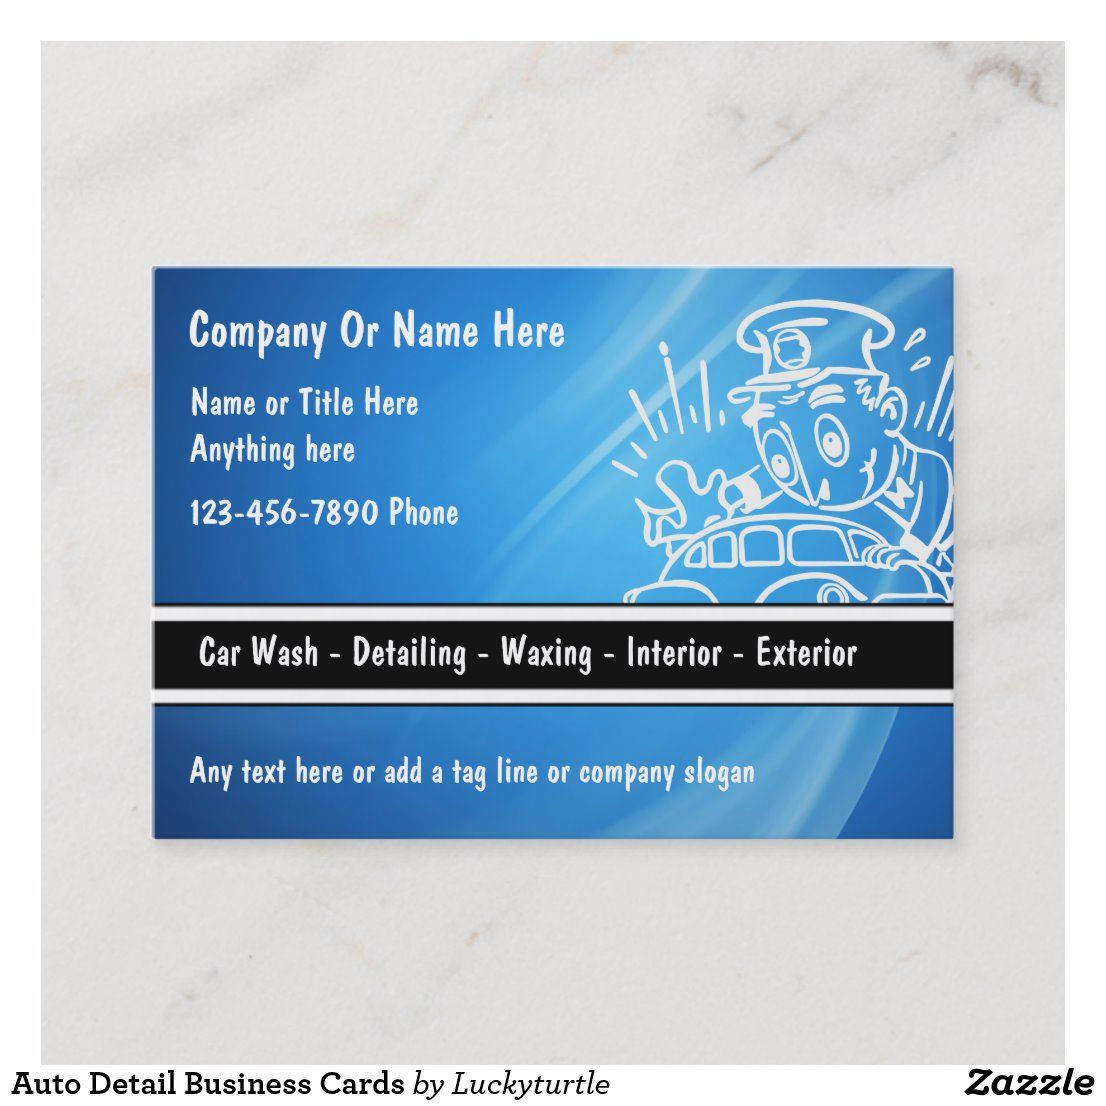 Auto detail business cards with images